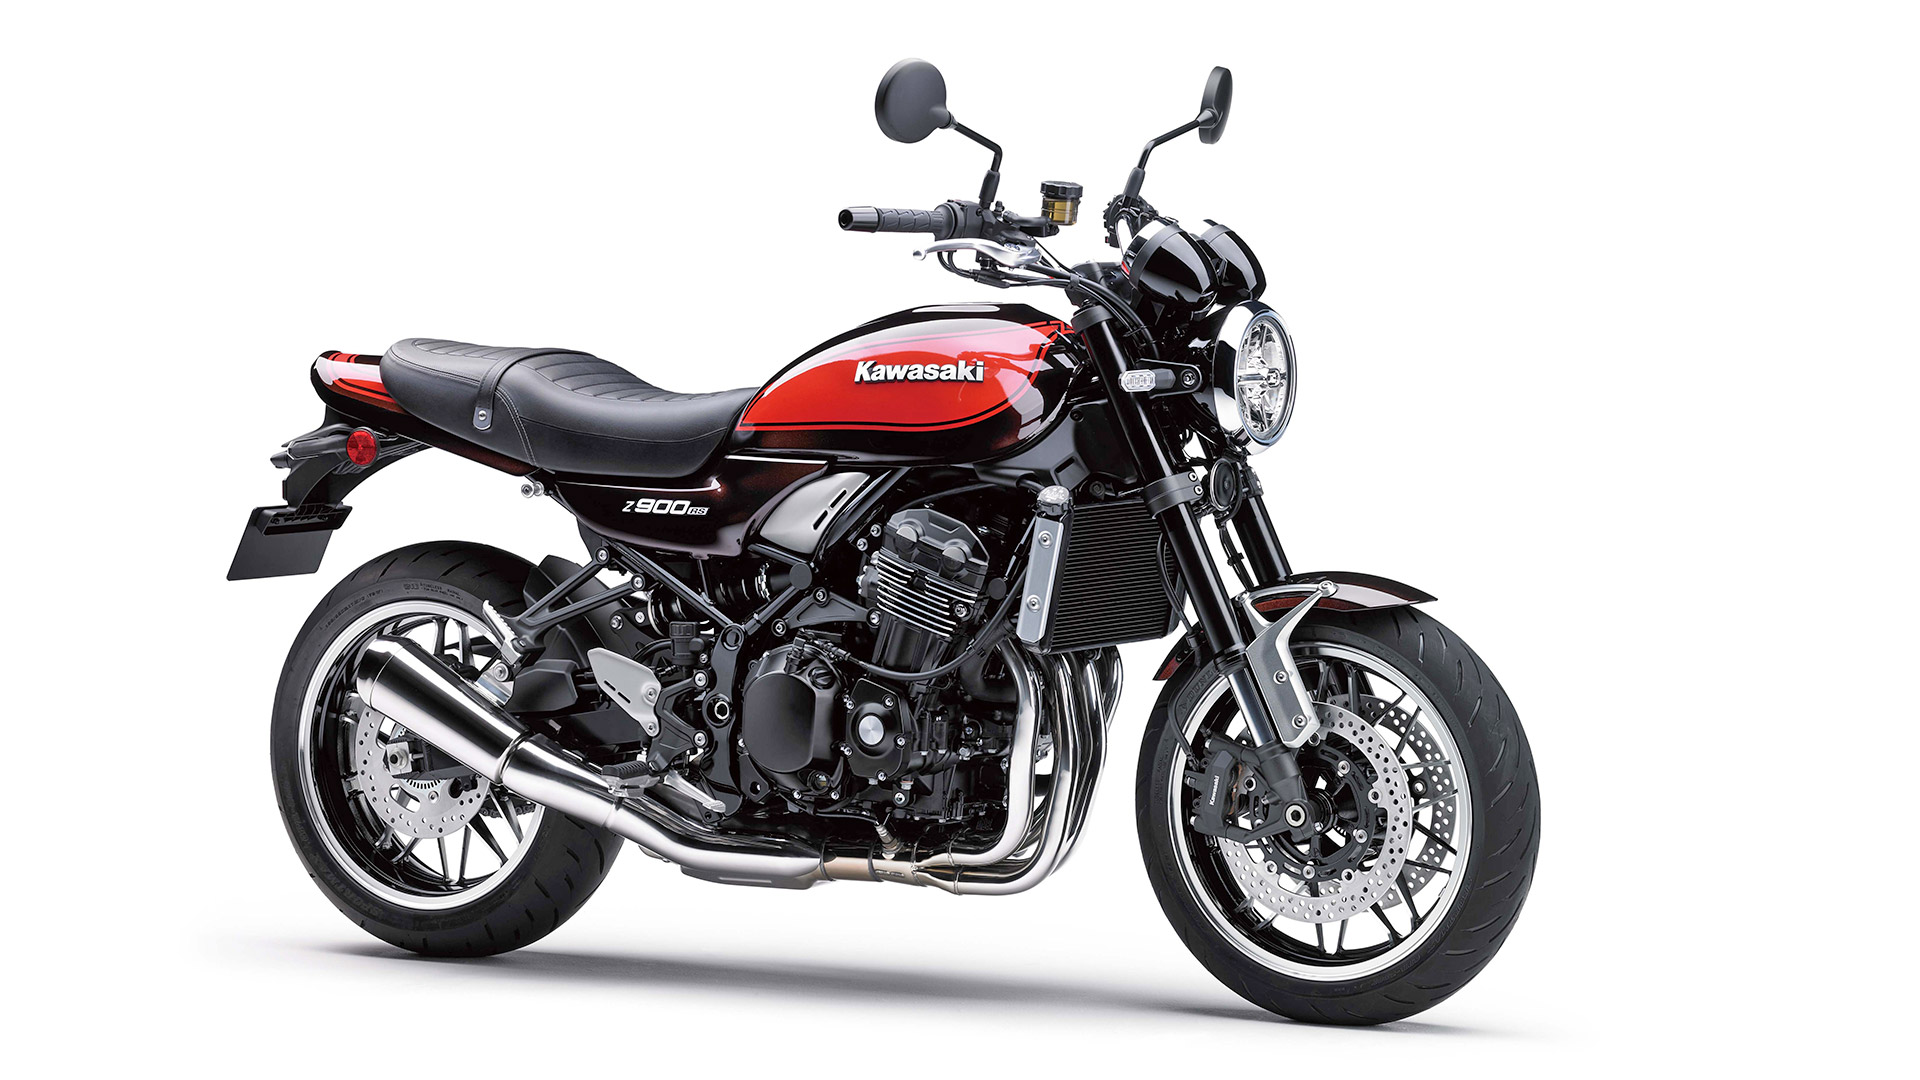 Kawasaki Z900 2018 - Price, Mileage, Reviews, Specification, Gallery